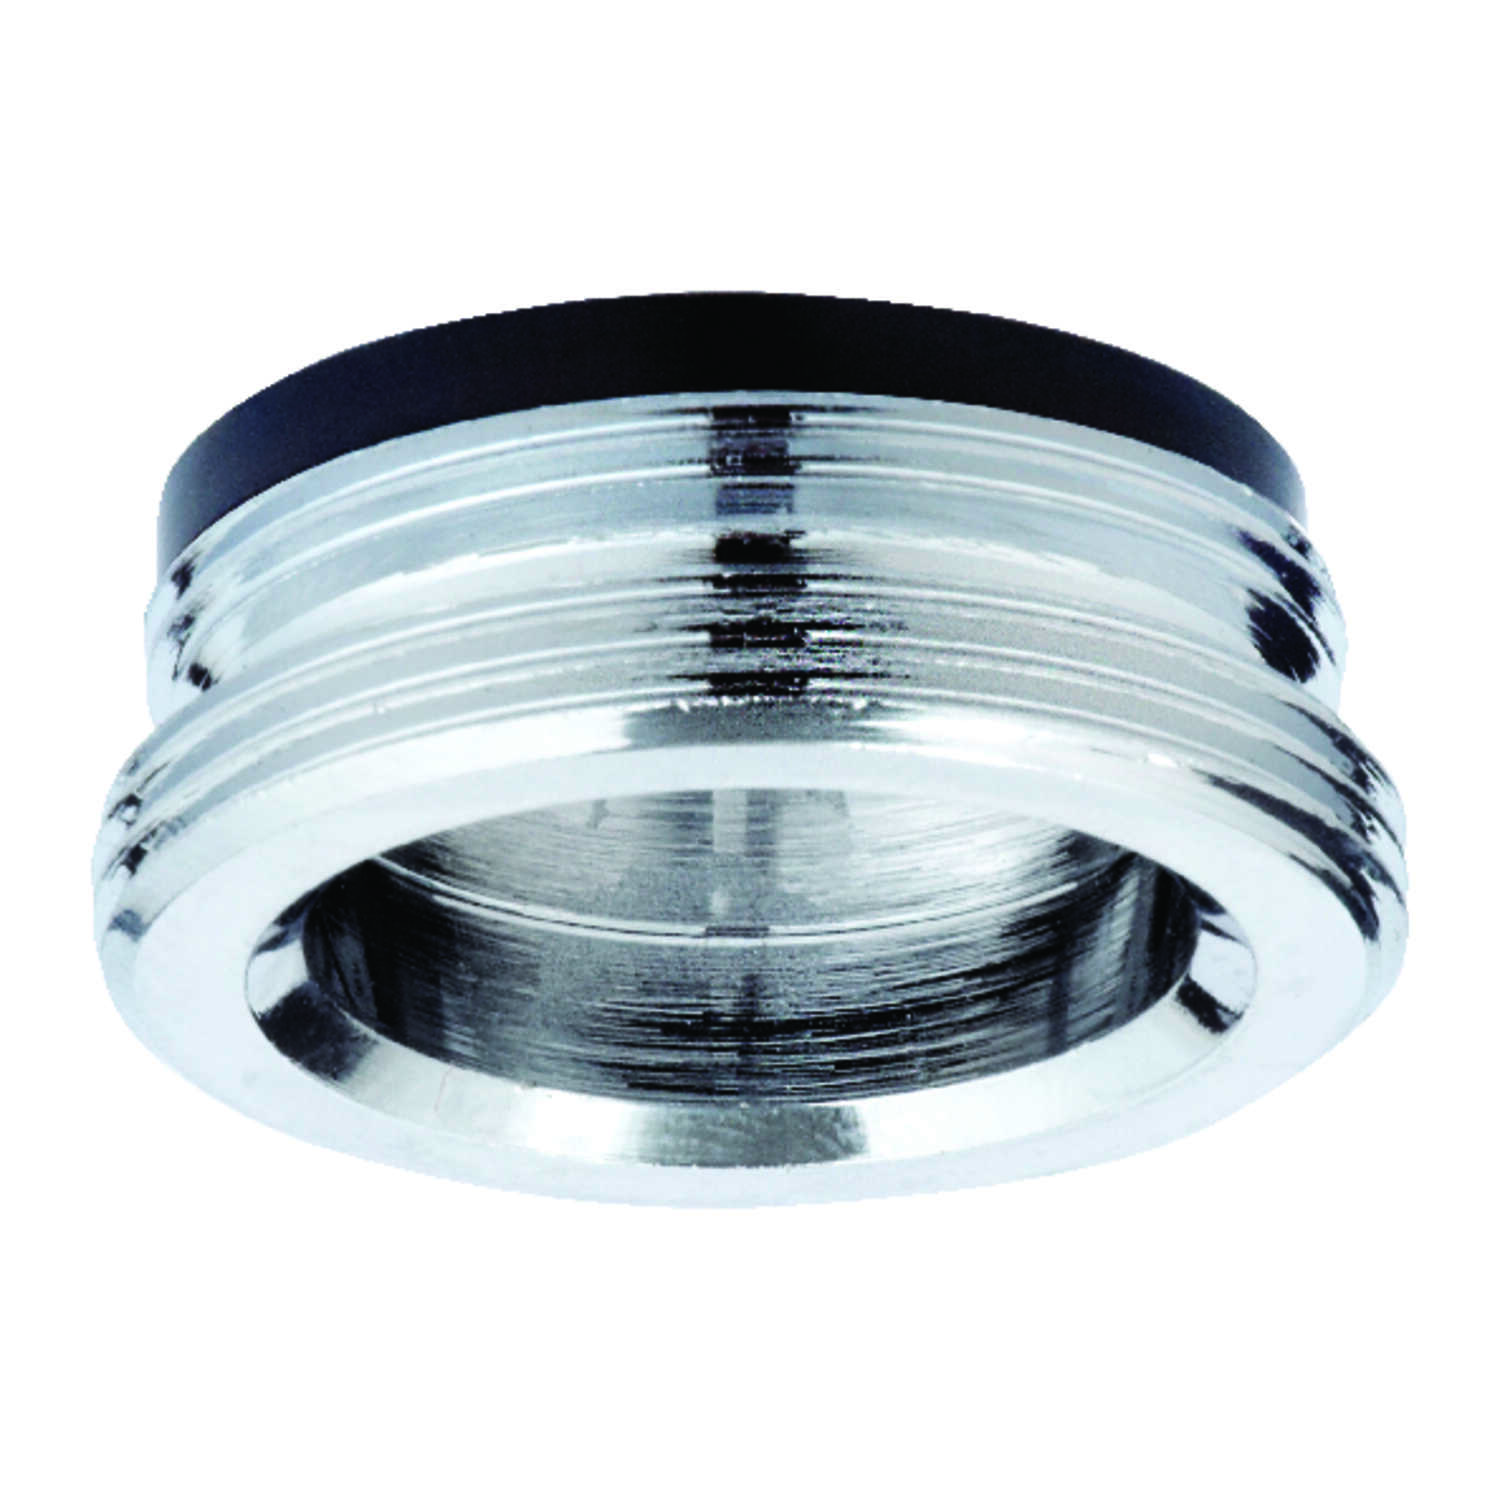 Ace Chrome 55 64 In X 15 16 In Male Aerator Adapter 1